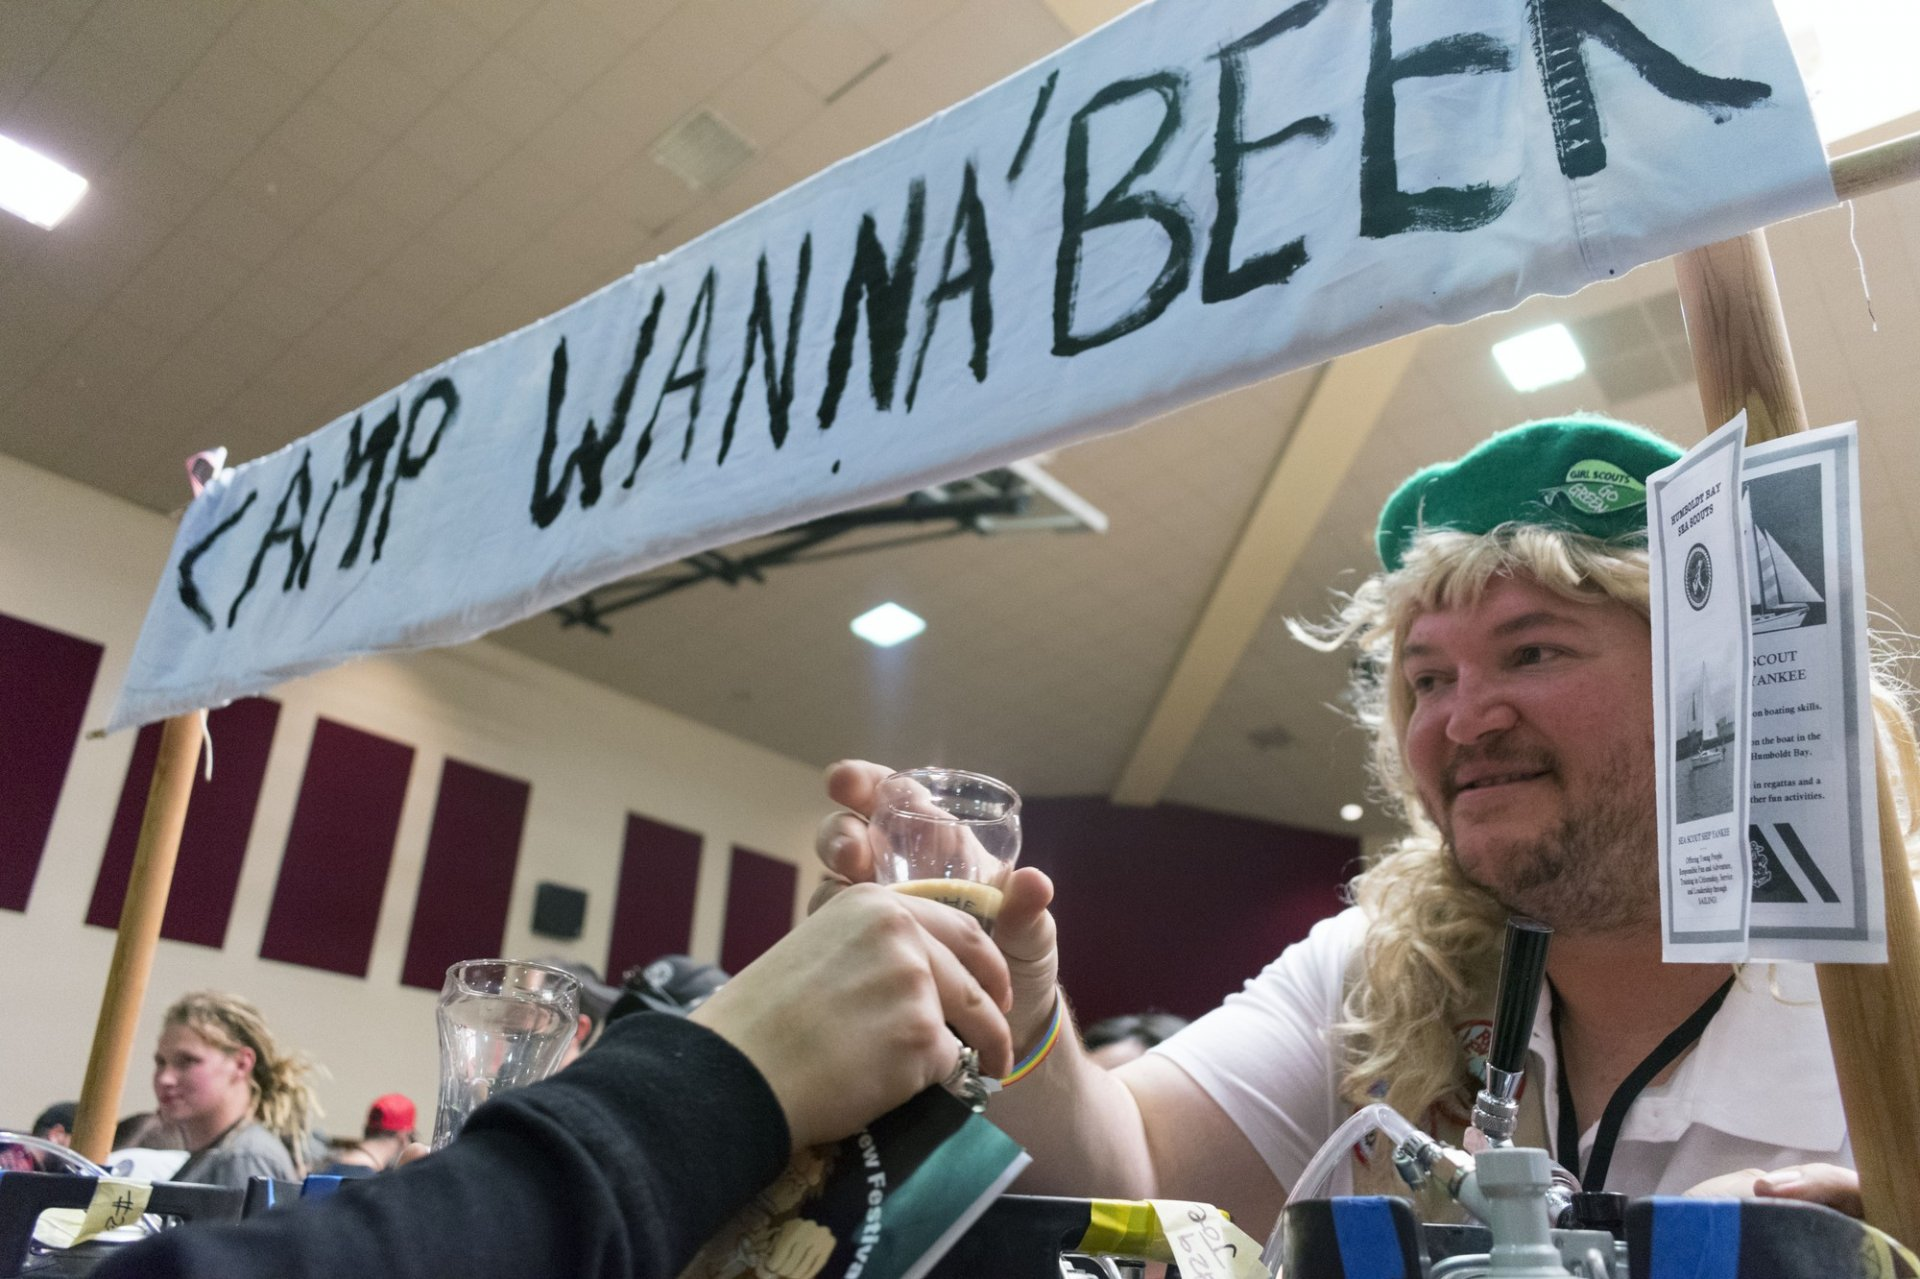 Brewer Joseph McKinzie, dressed as a girl scout, serves the Cookie Withdrawl Black IPA from the Camp WannaBeer booth at the 8th Annual Humboldt Homebrew Festival on April 7 at the Arcata Community Center. Photo by Megan Bender.